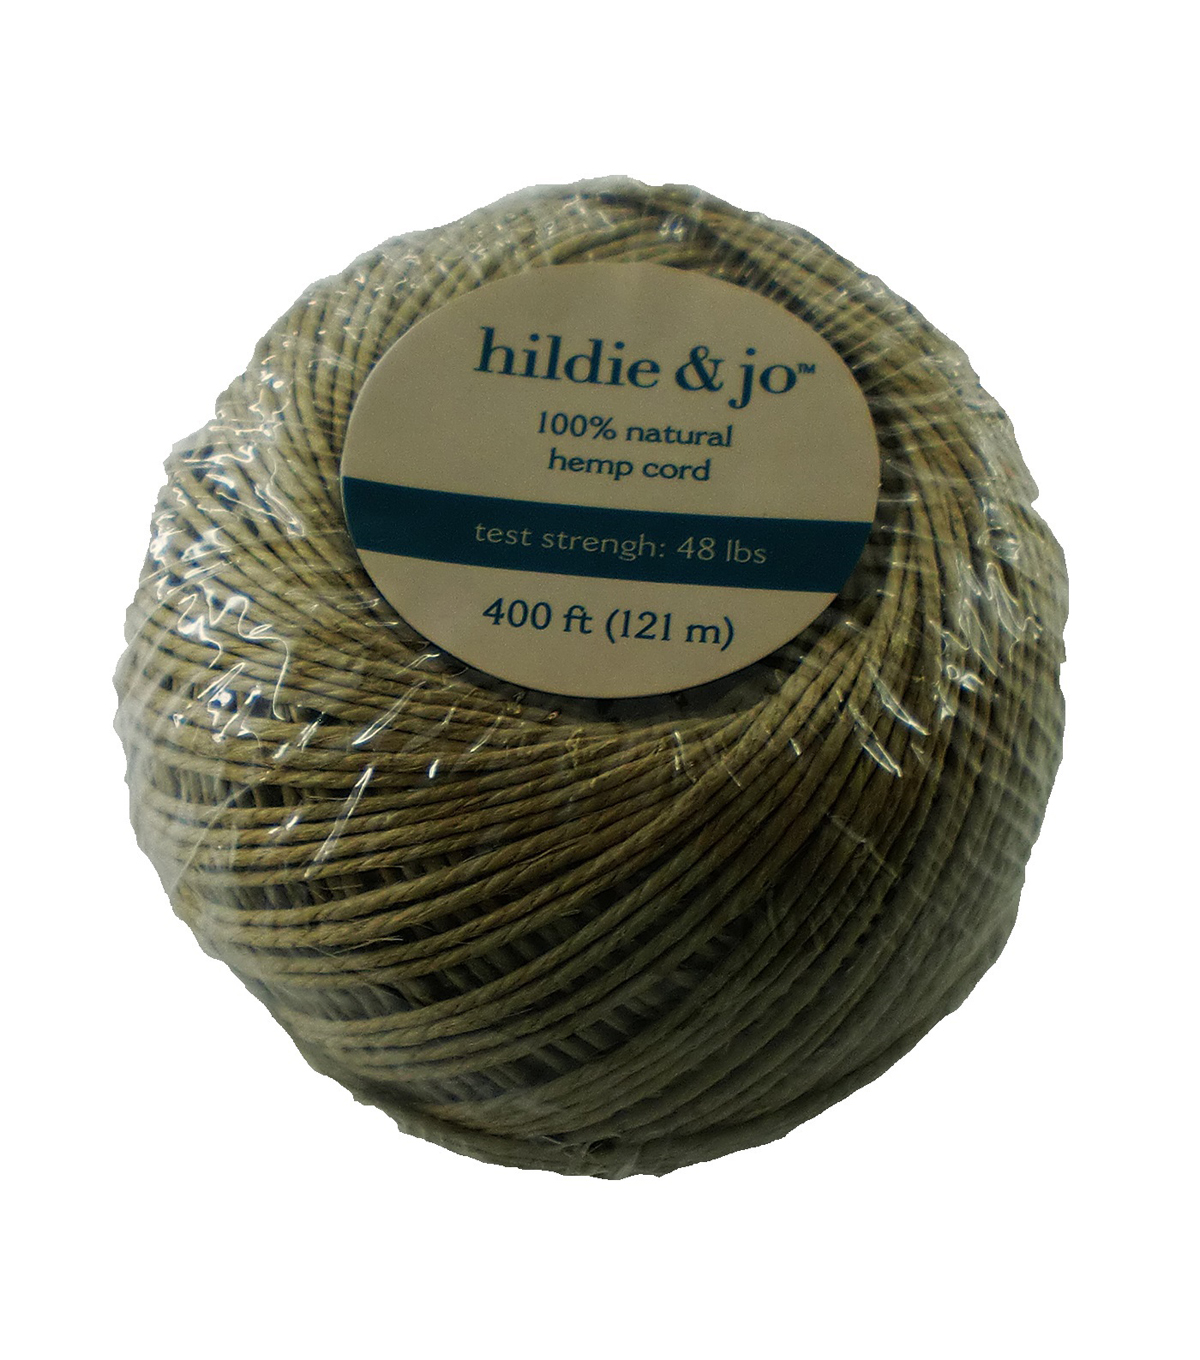 Darice 48# Hemp Cord-400ft/100% Natural